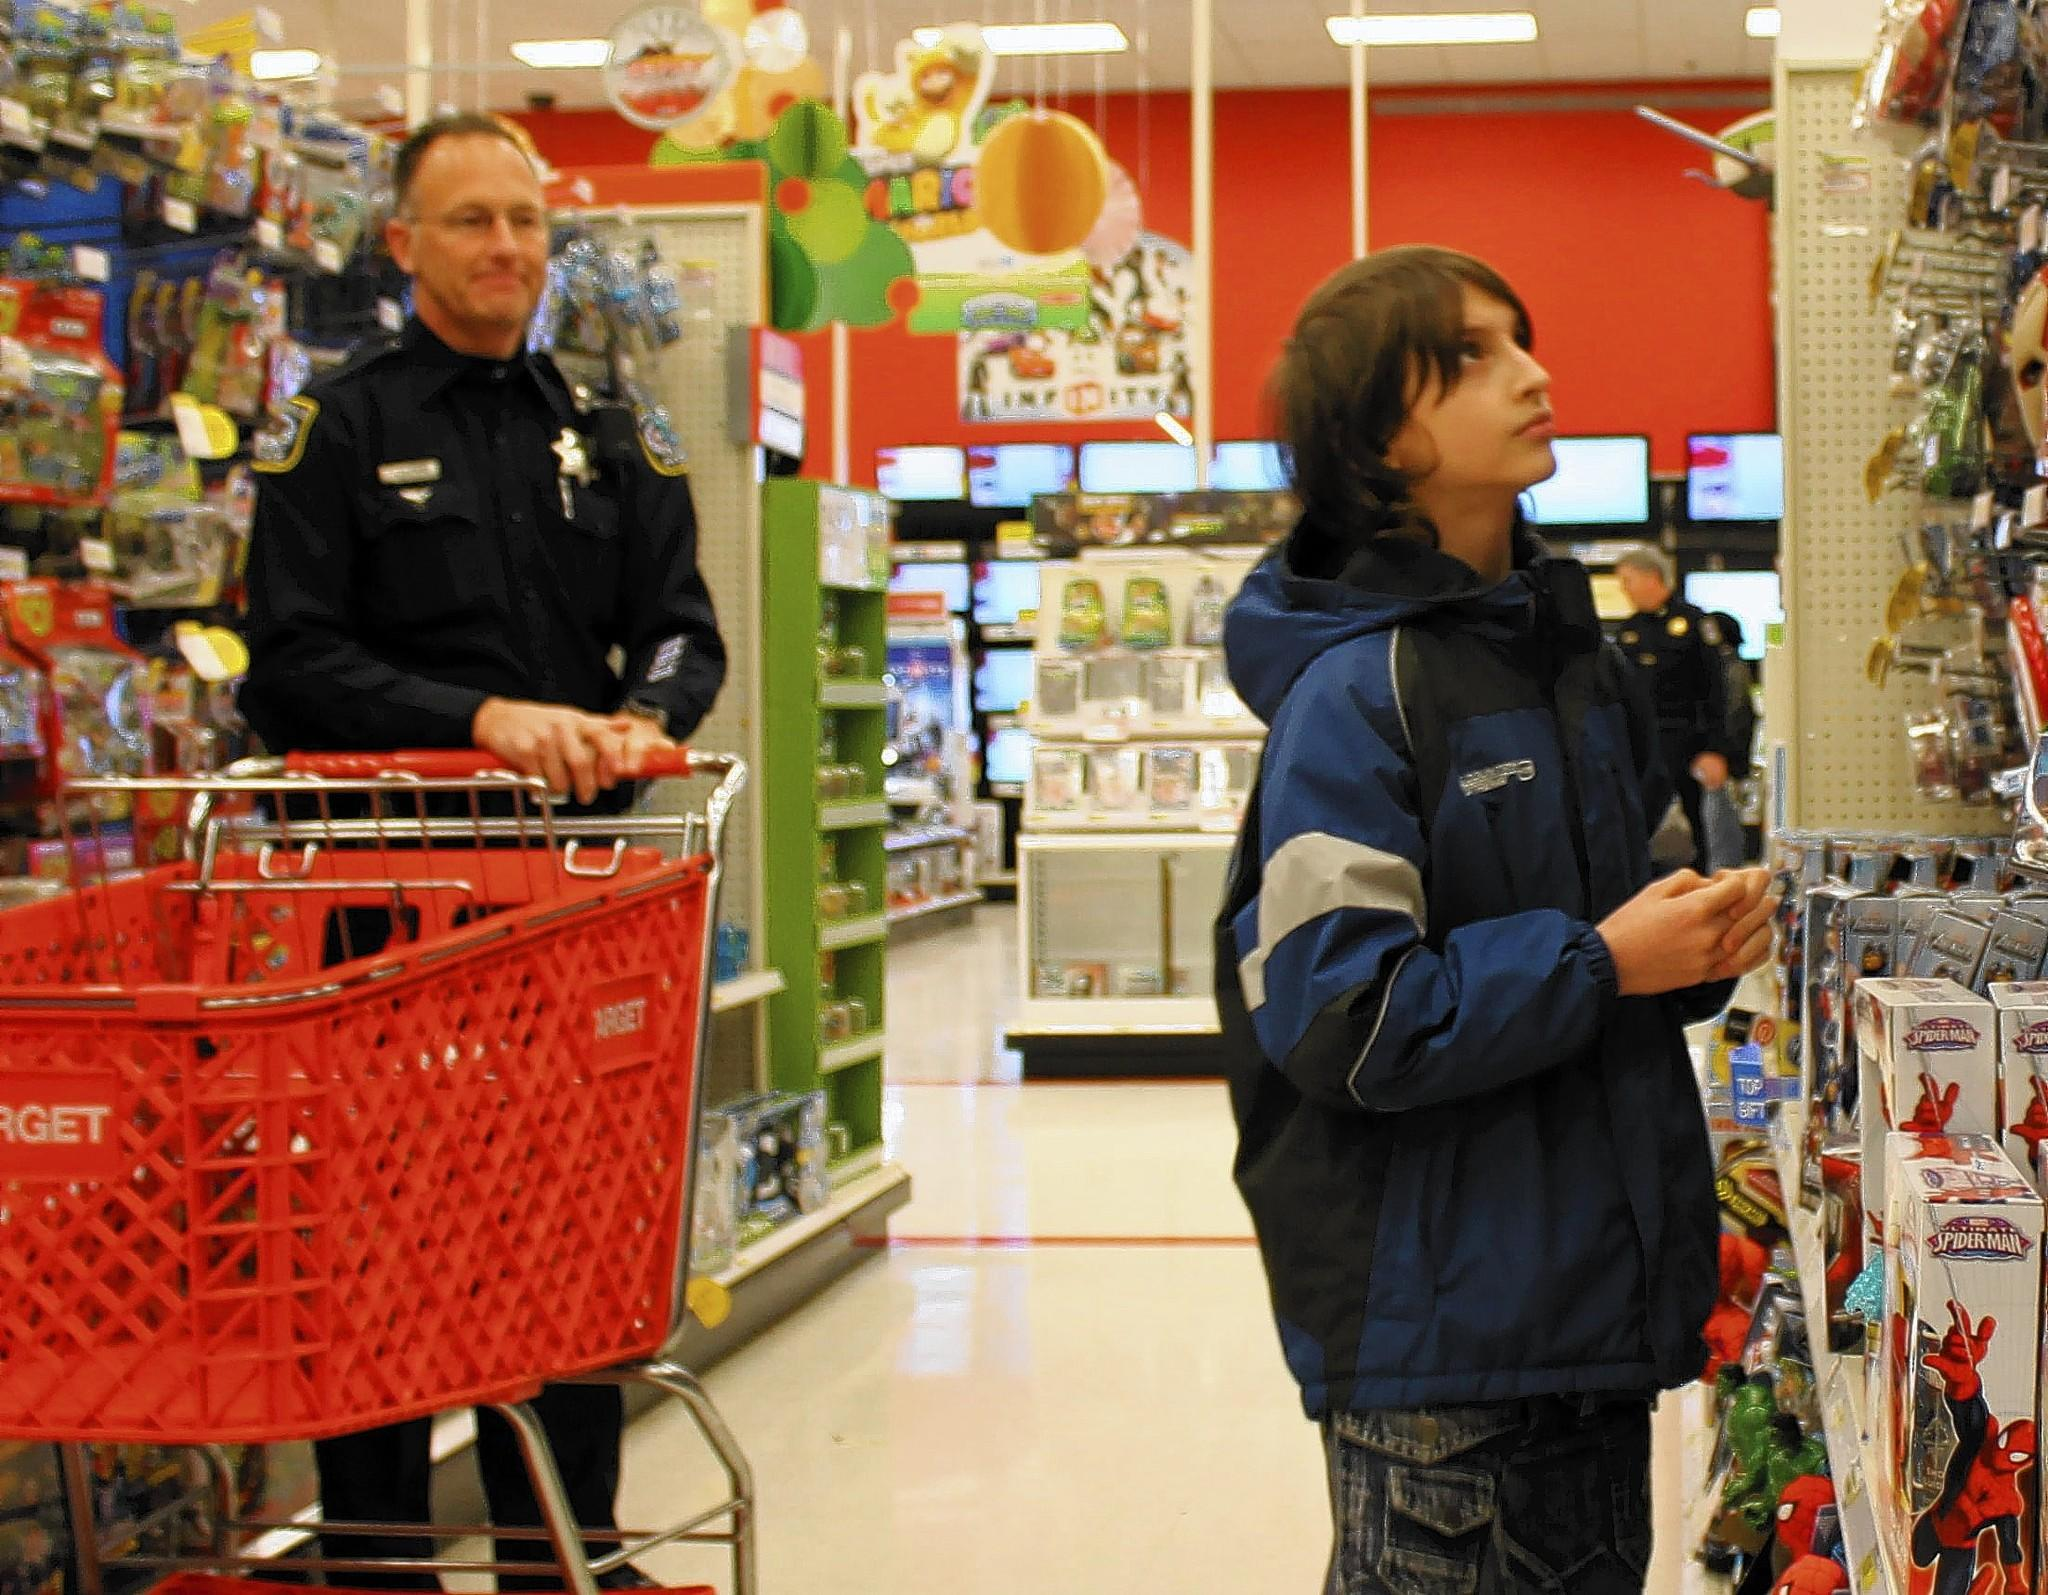 Kaon, 11, chooses a toy while Naperville police officer Dan Fisher waits with shopping cart.